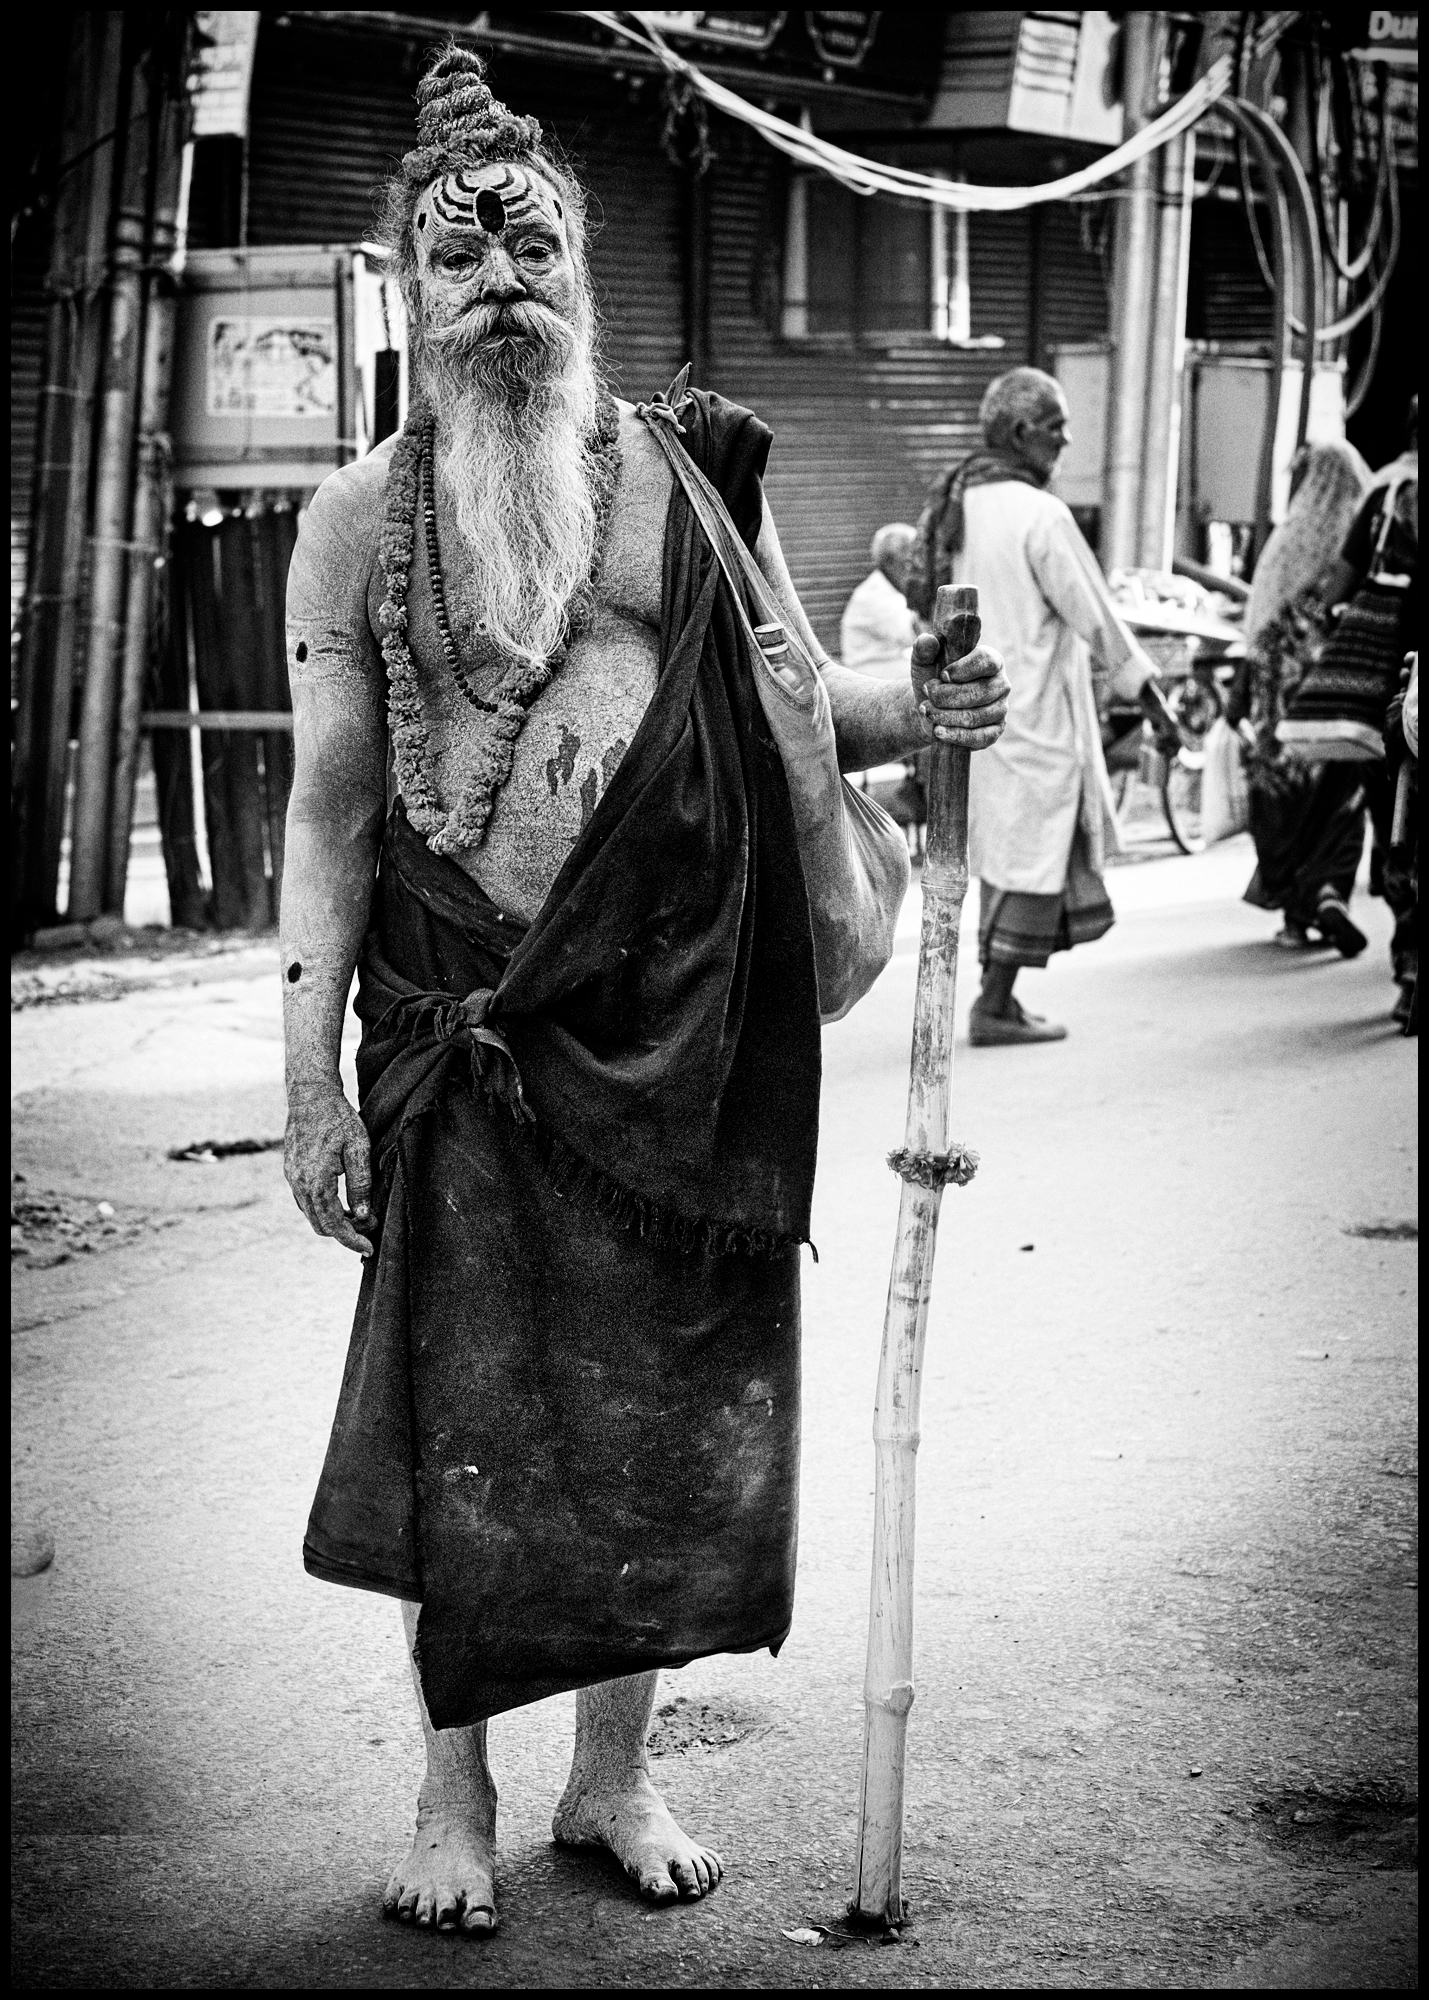 not-holy-man20171022-LEICA-INDIA-0222.jpg